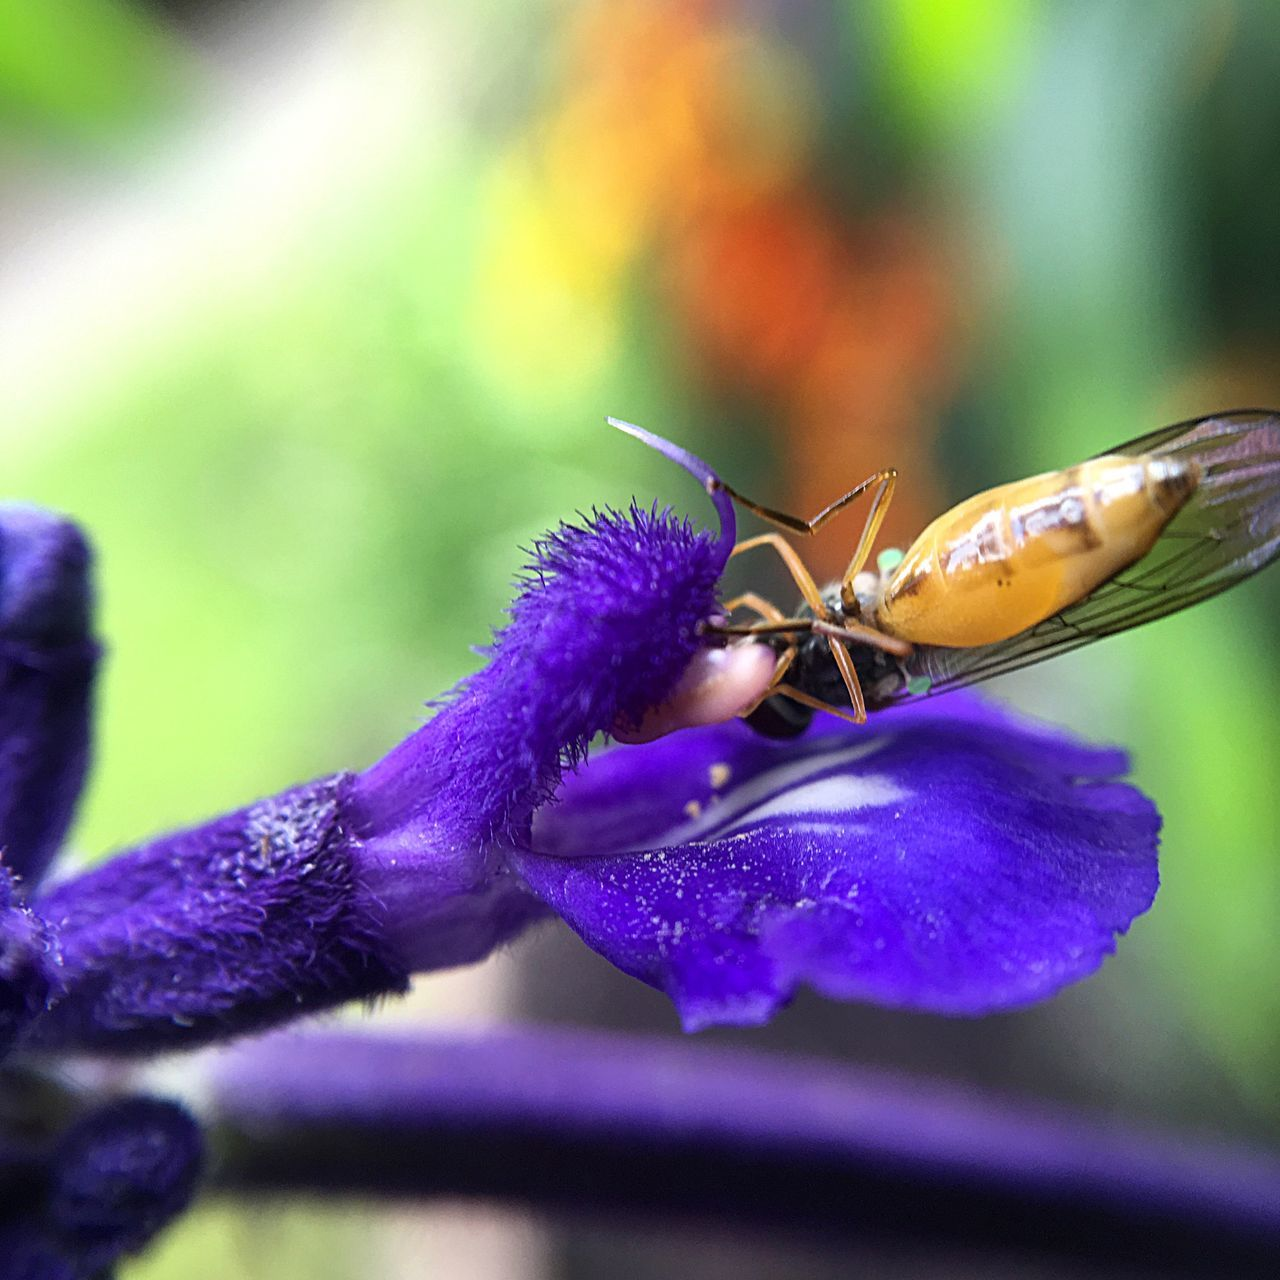 flower, nature, insect, beauty in nature, close-up, animals in the wild, animal themes, plant, one animal, no people, purple, fragility, petal, outdoors, freshness, focus on foreground, growth, day, flower head